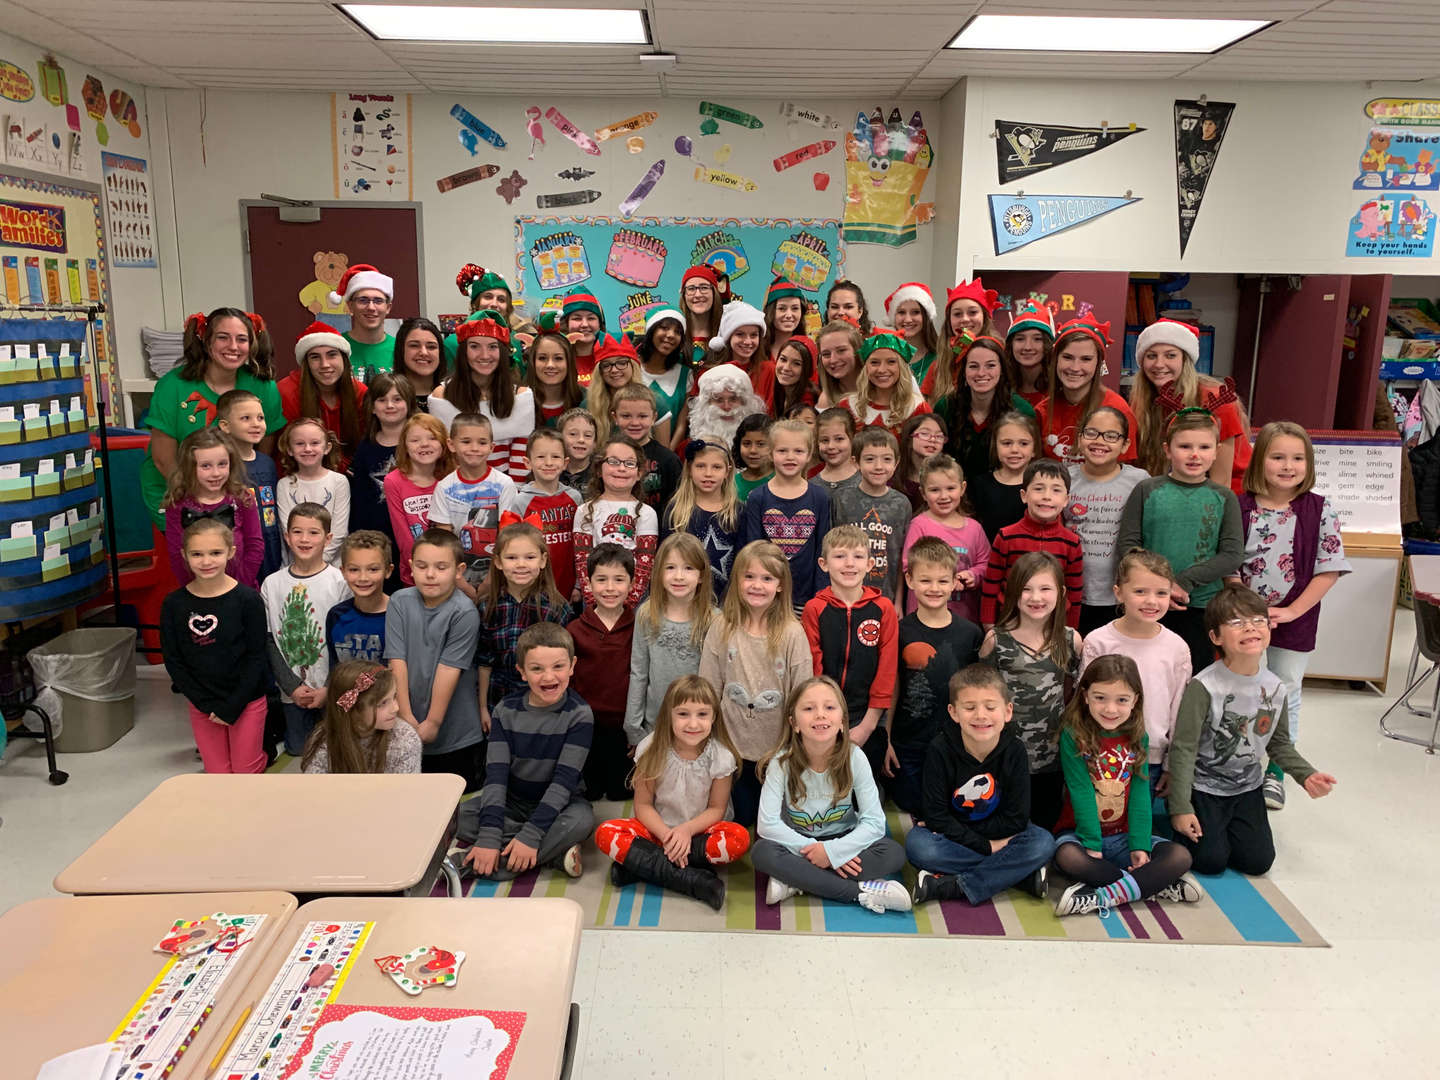 Student Council Santa aka Nick and his Elves with students from Mrs. Virgin & Miss Skrgic's 1st grade classes.